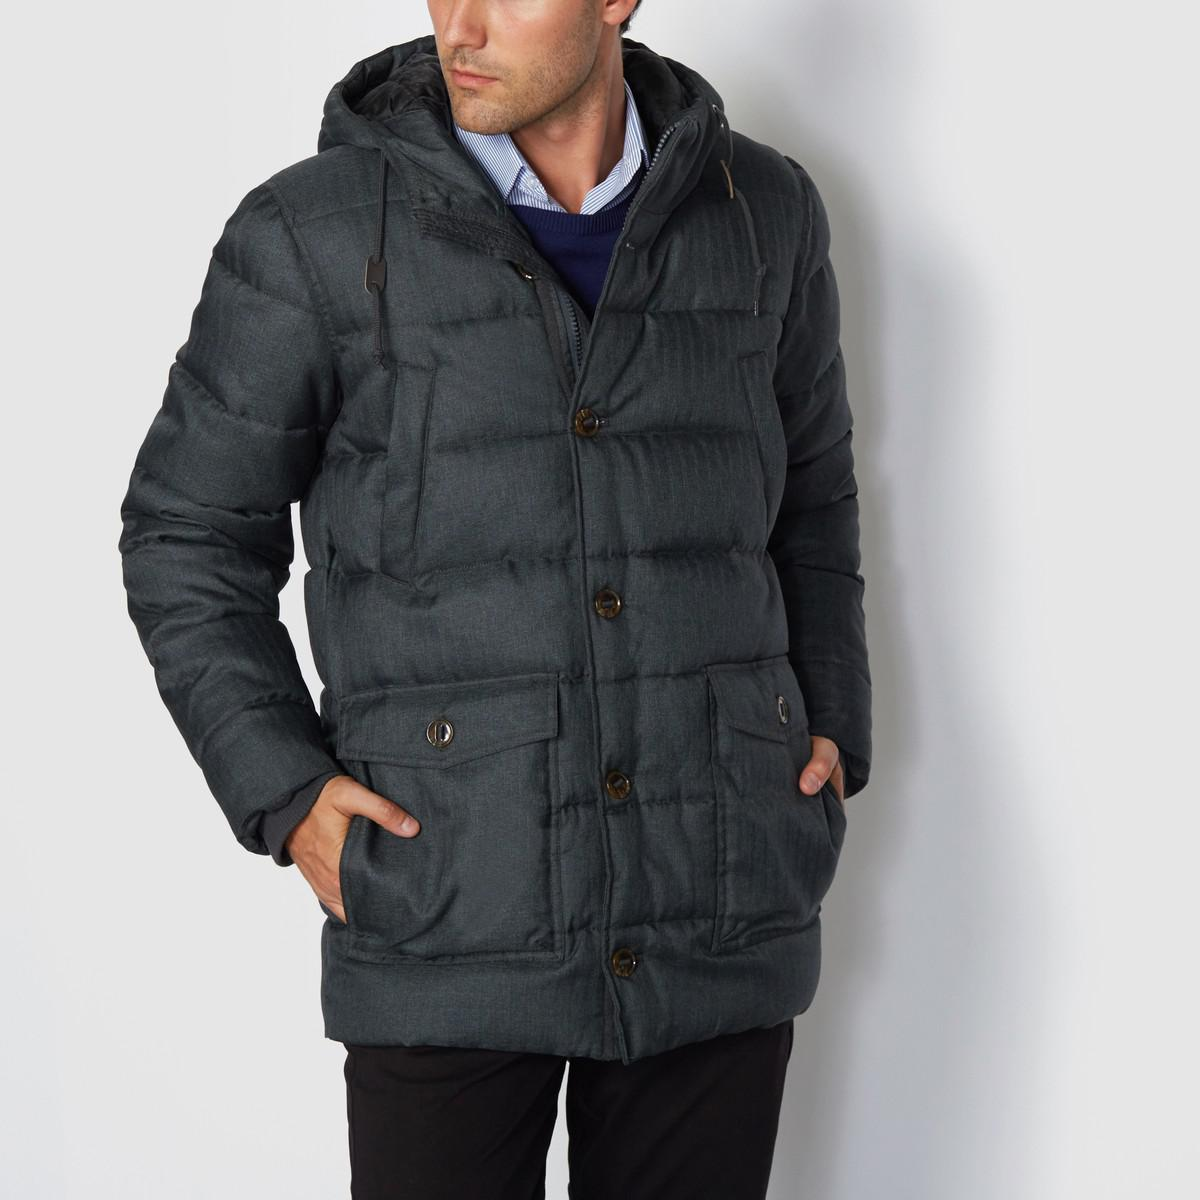 ef6143197d78 Lyst - La Redoute Hooded Padded Jacket in Gray for Men